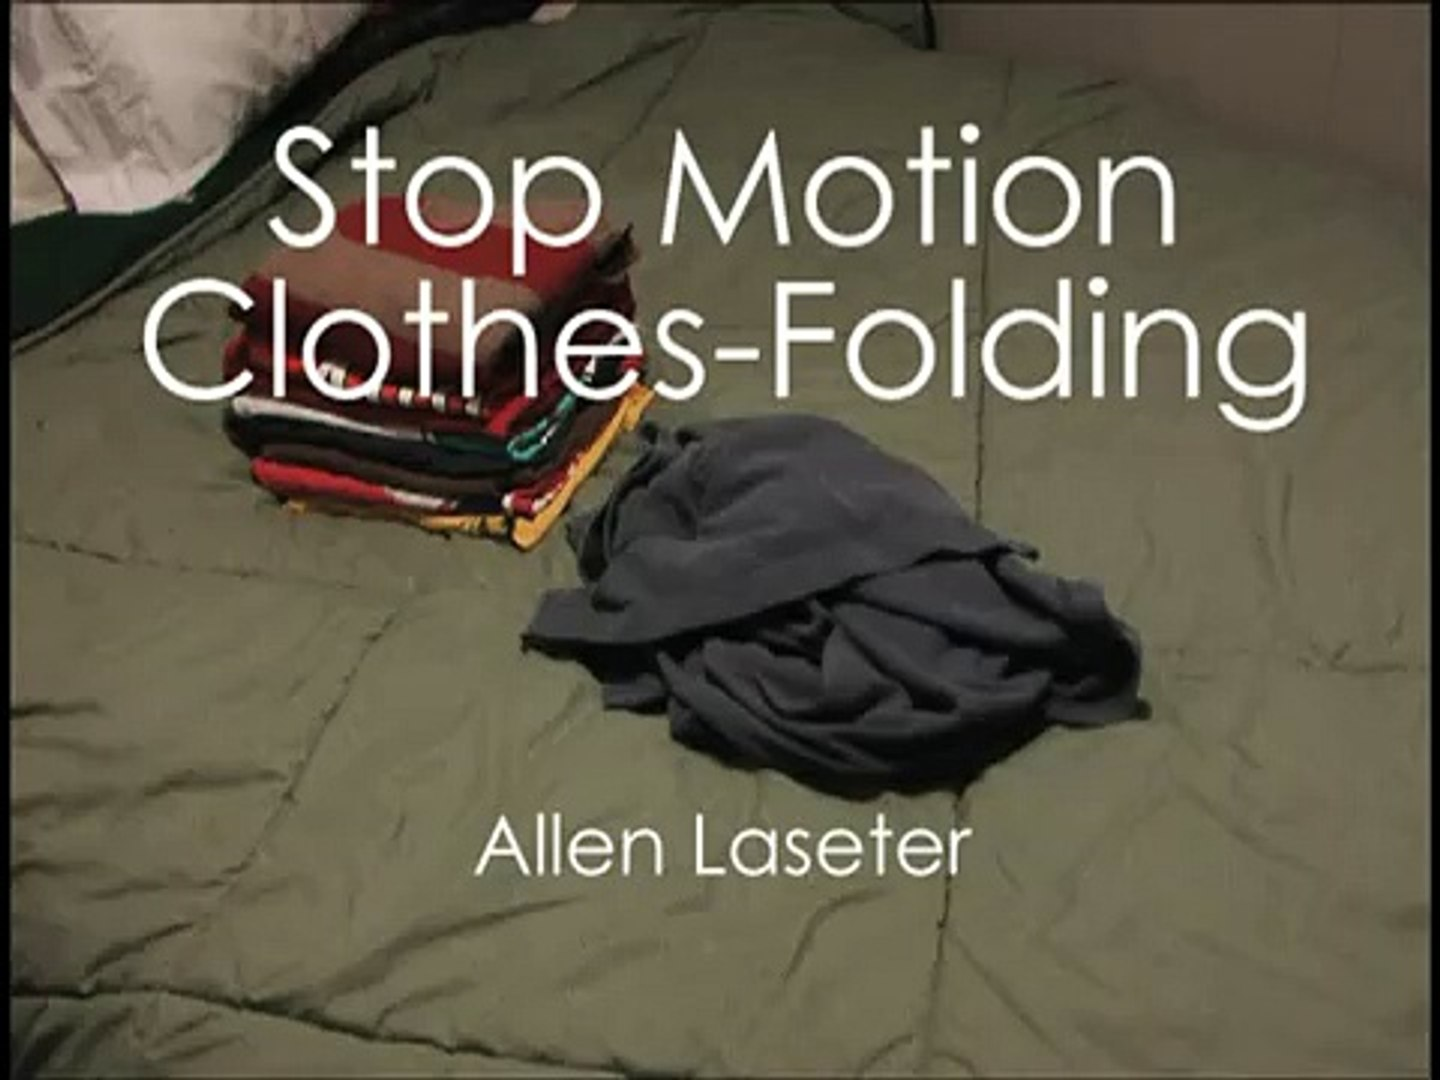 Stop Motion Clothes-Folding